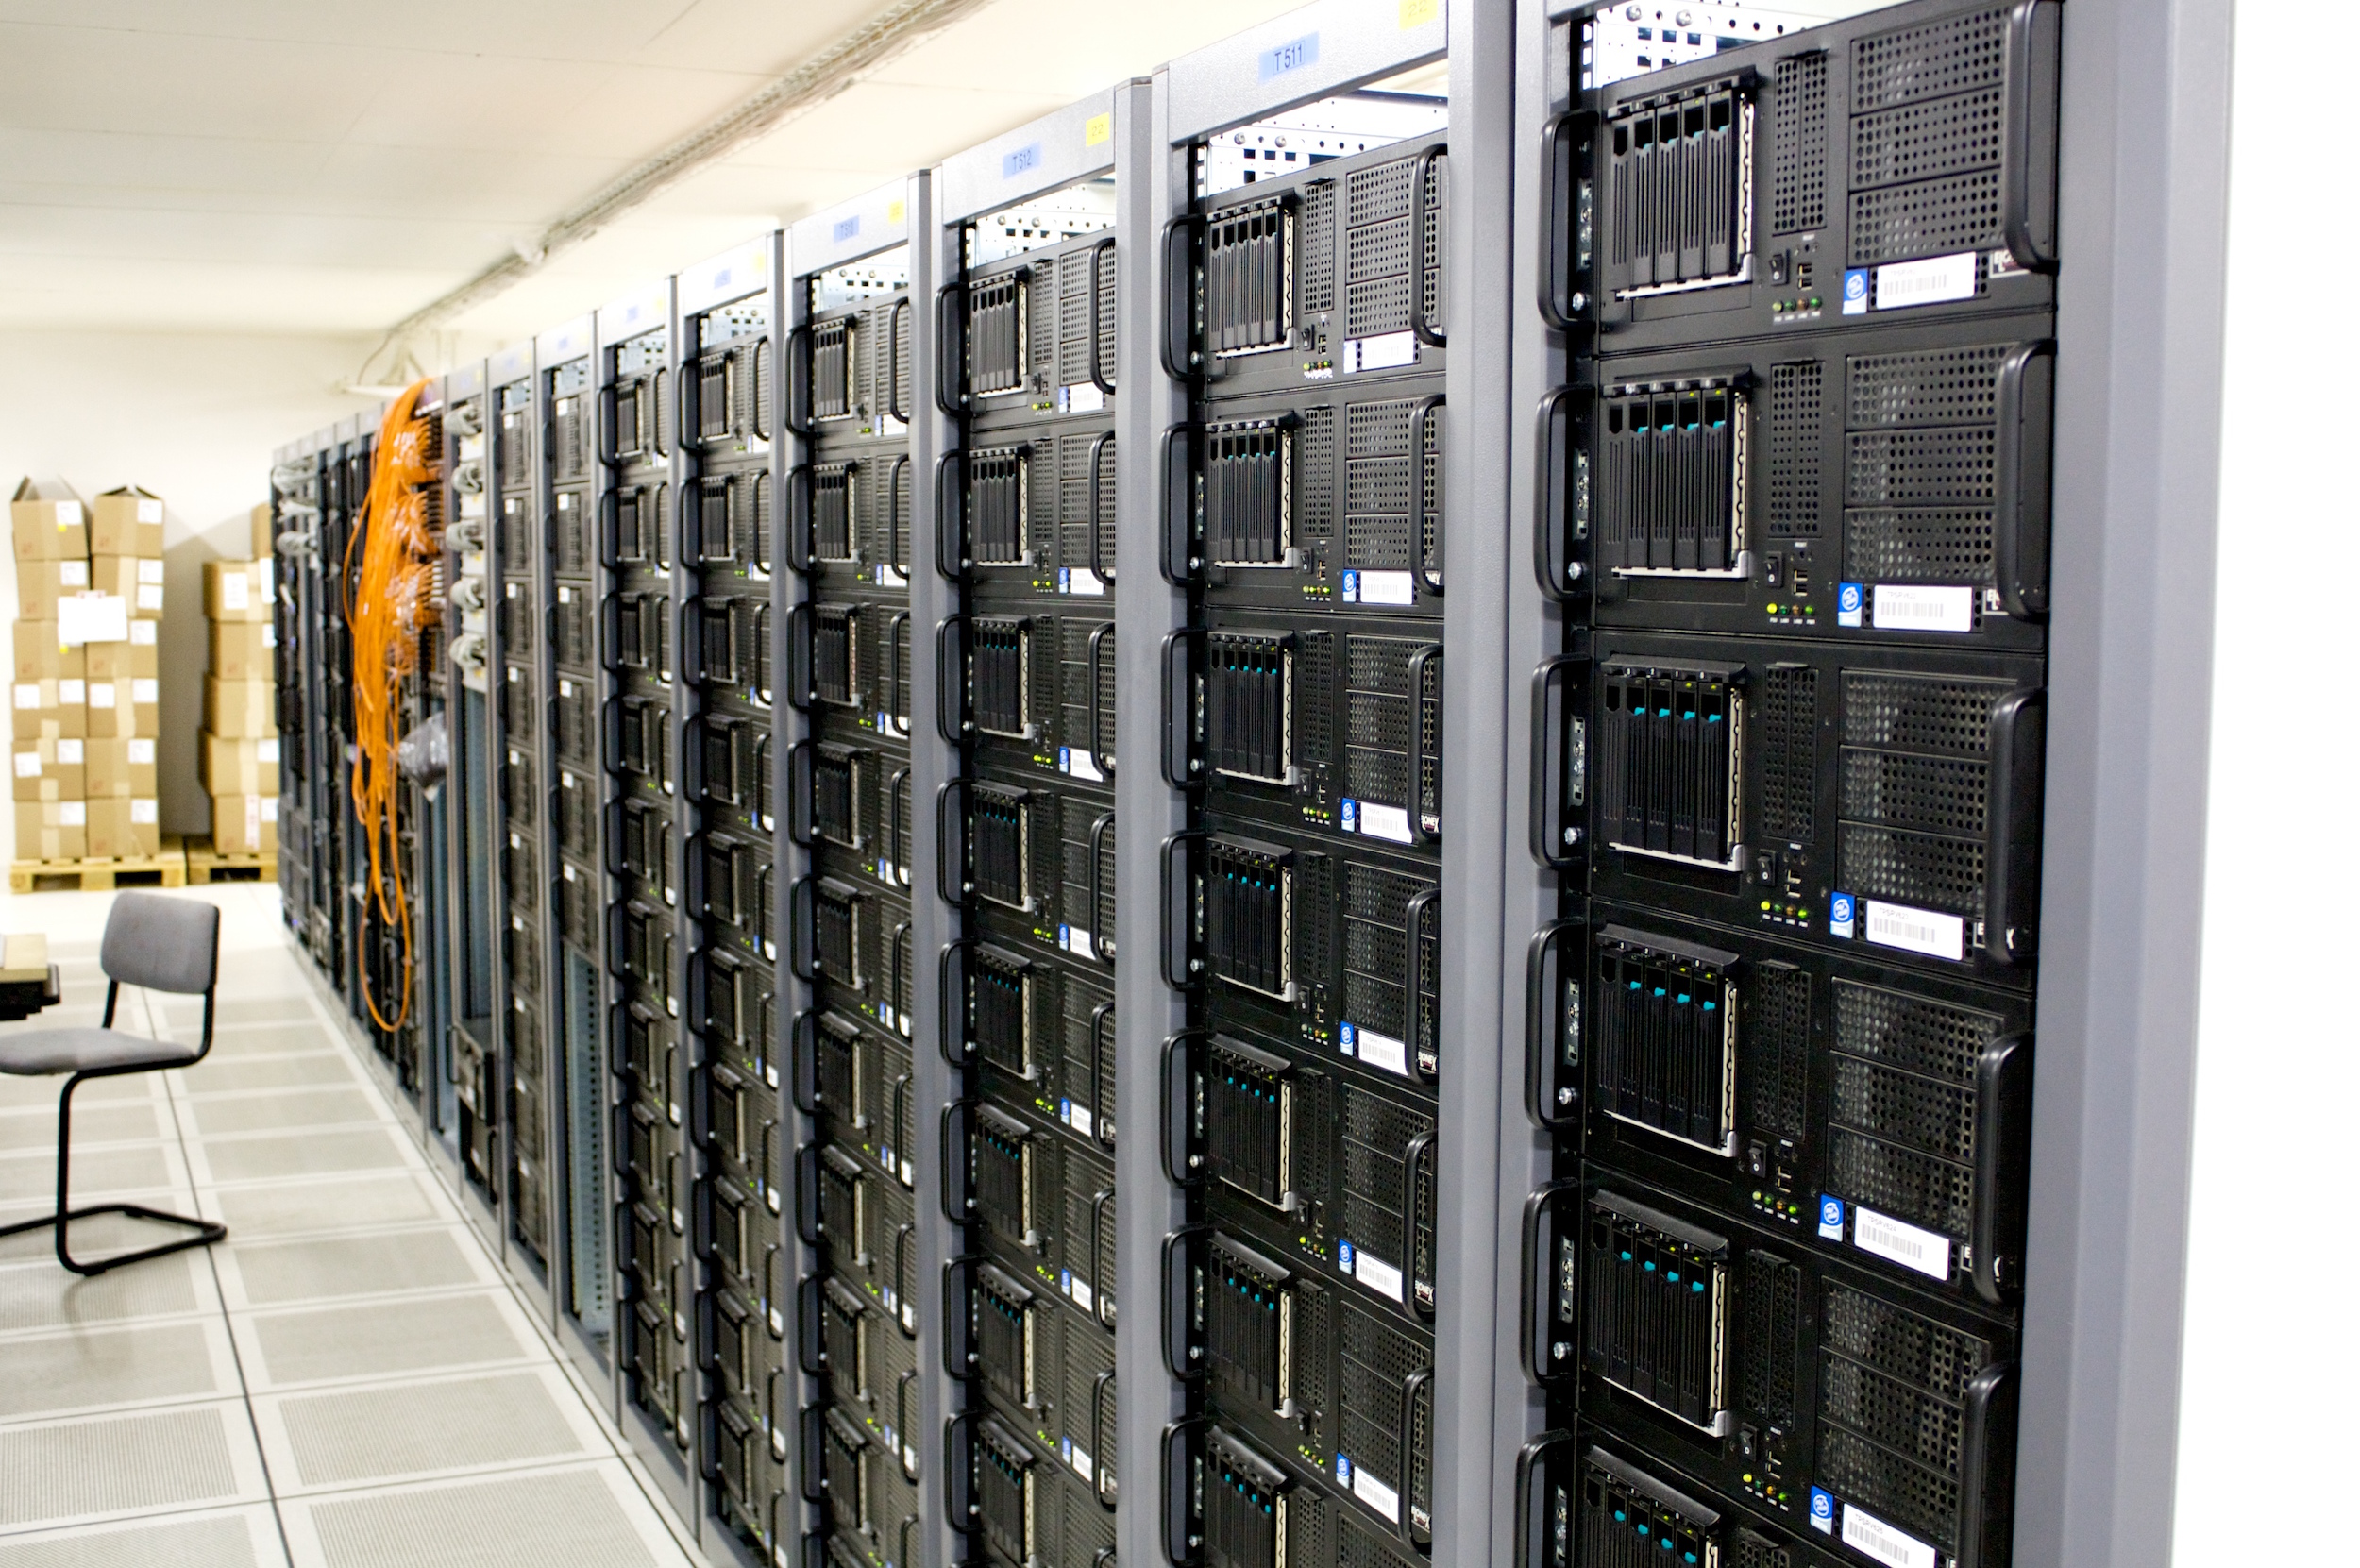 Home, Home on the Web - All About Website Hosting